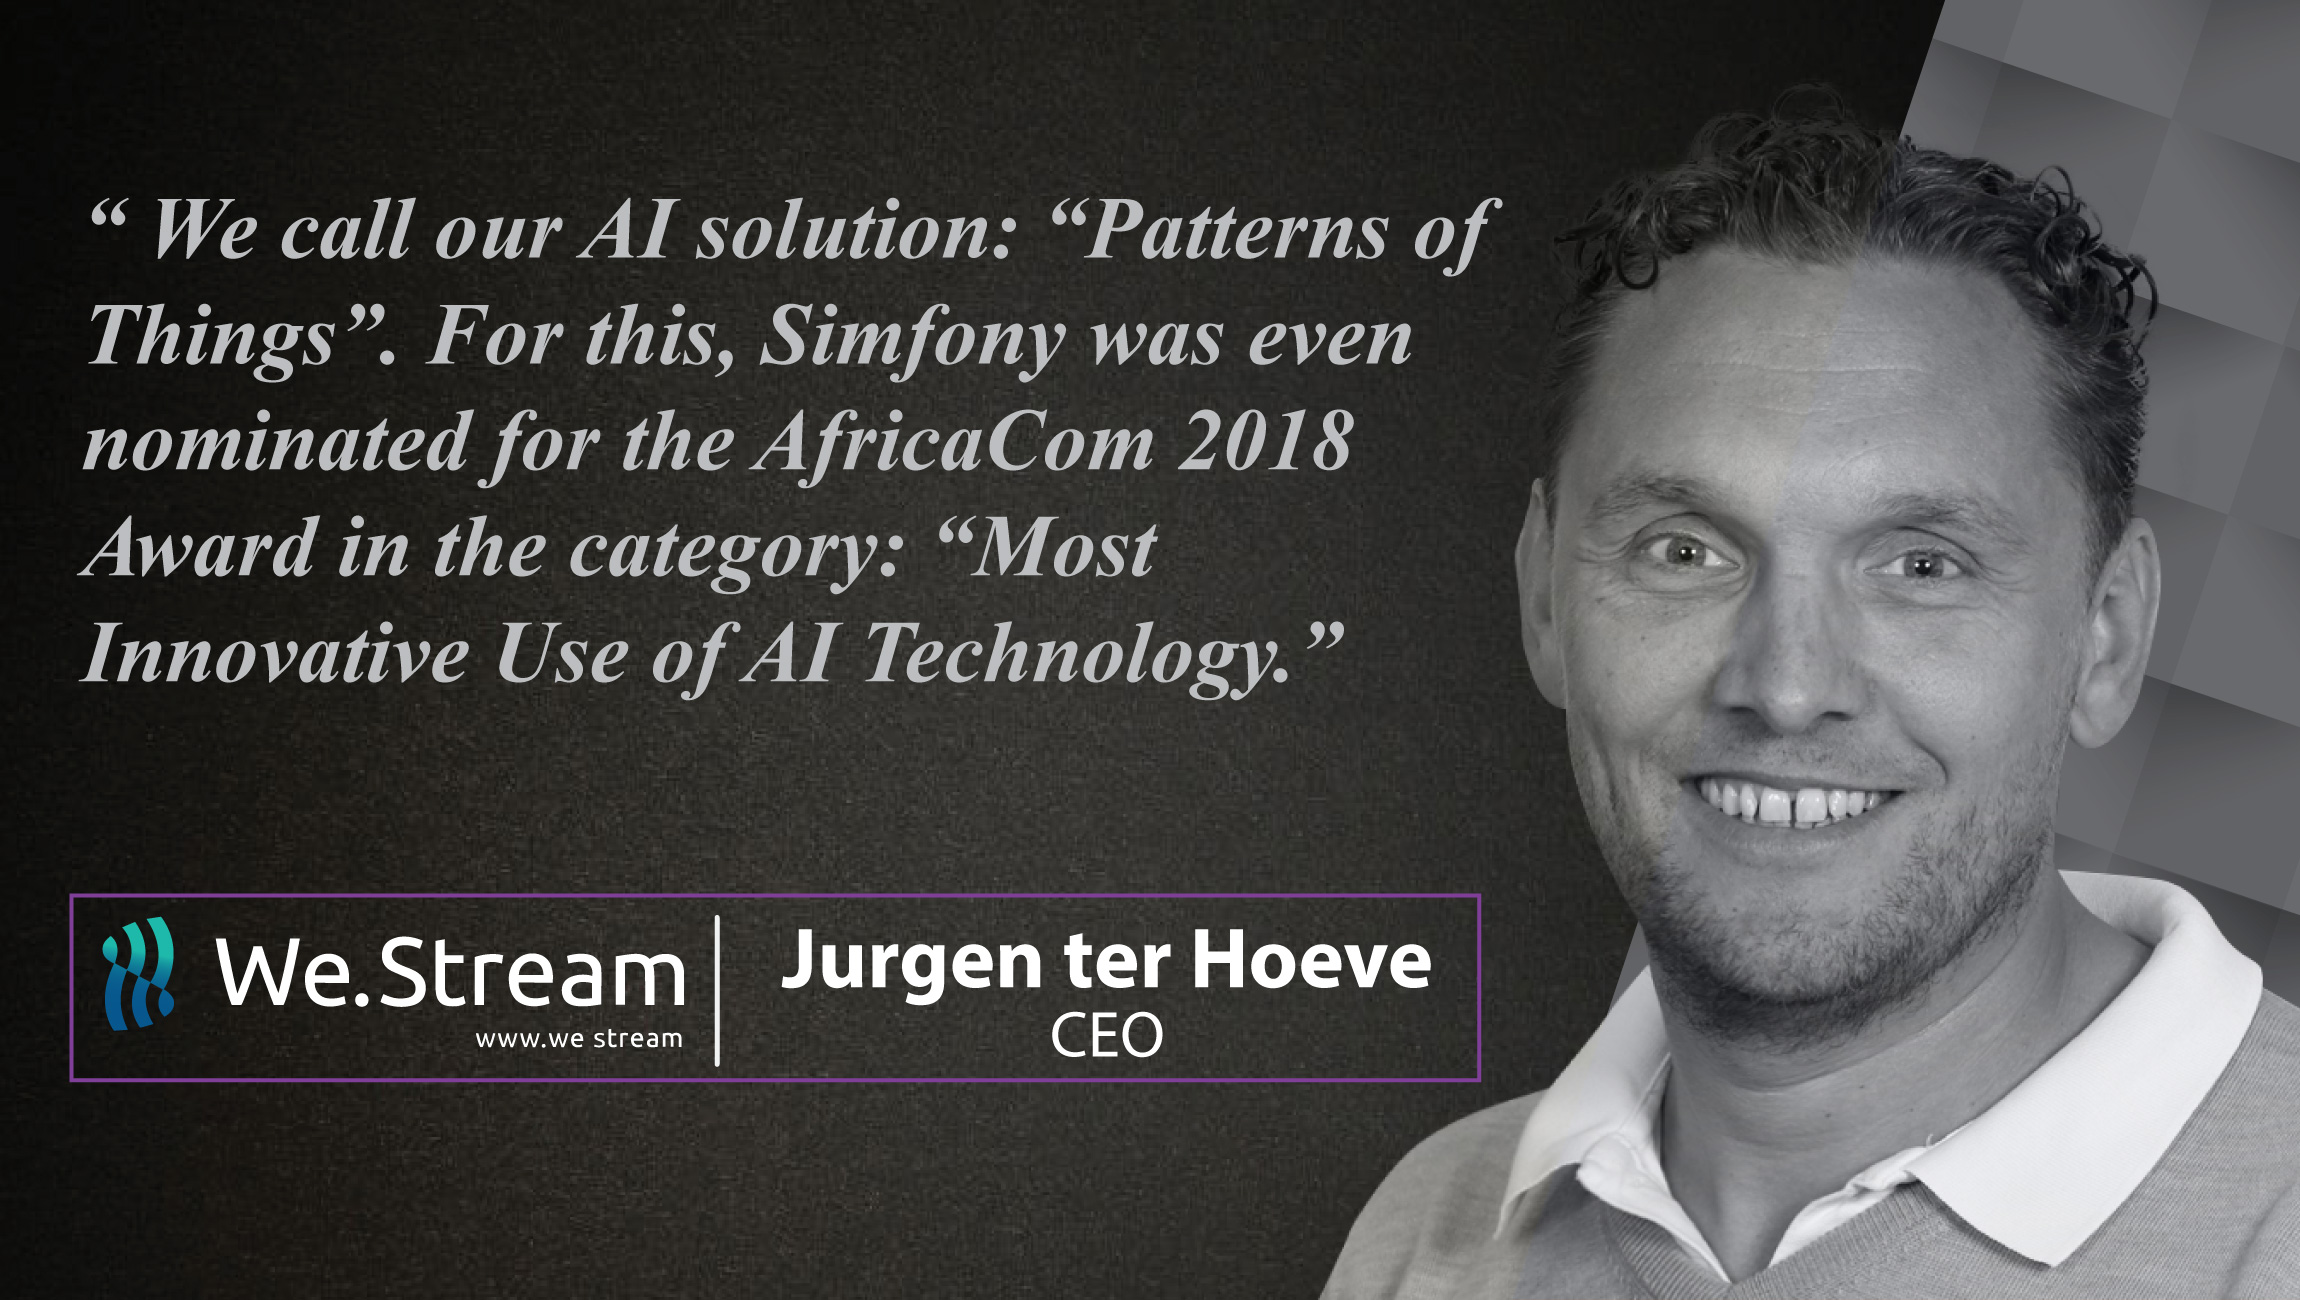 Jurgen ter Hoeve, CEO at We.Stream